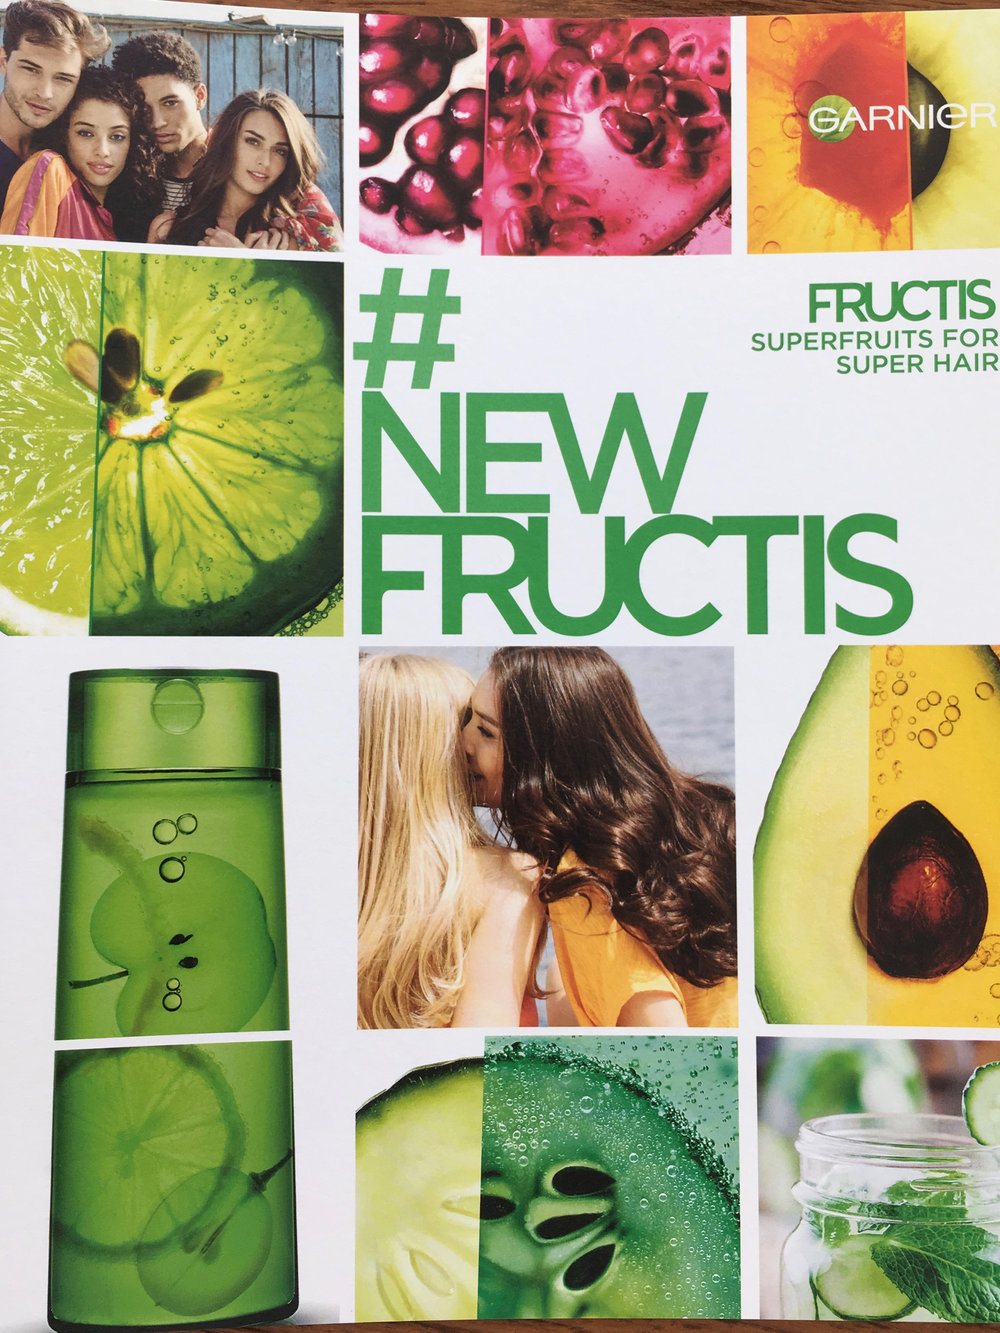 Fructis Brochure copy.jpg